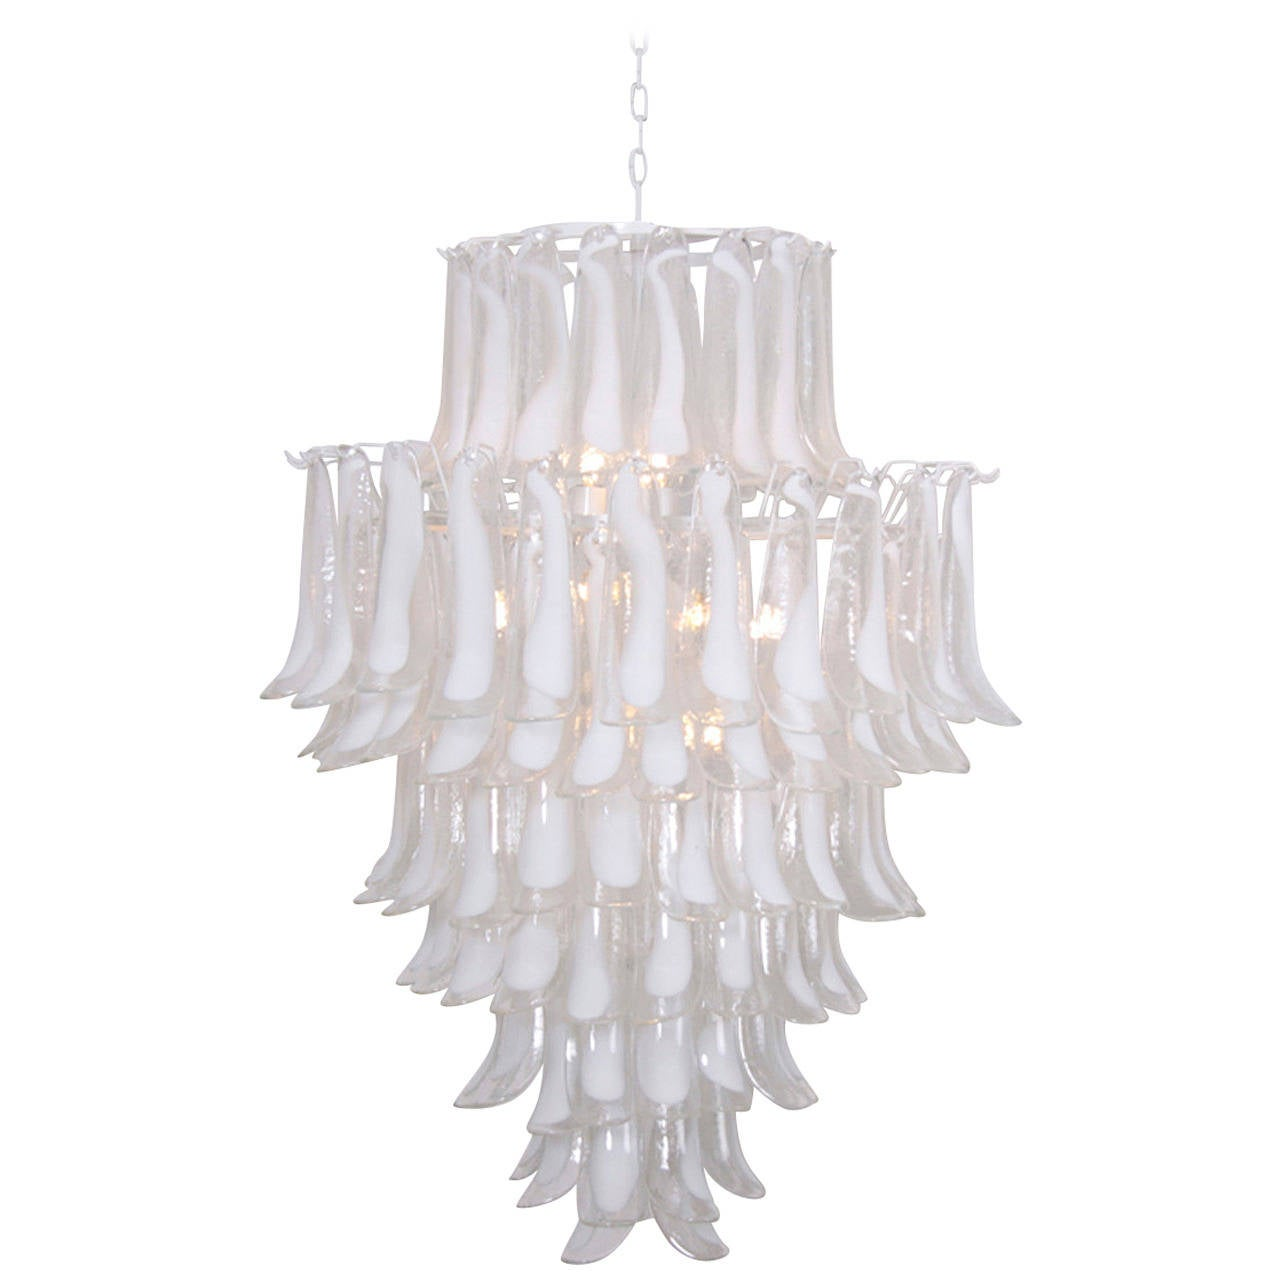 Extra Large Oversized Murano Glass Tulipani Or Feather Chandelier By Mazzega